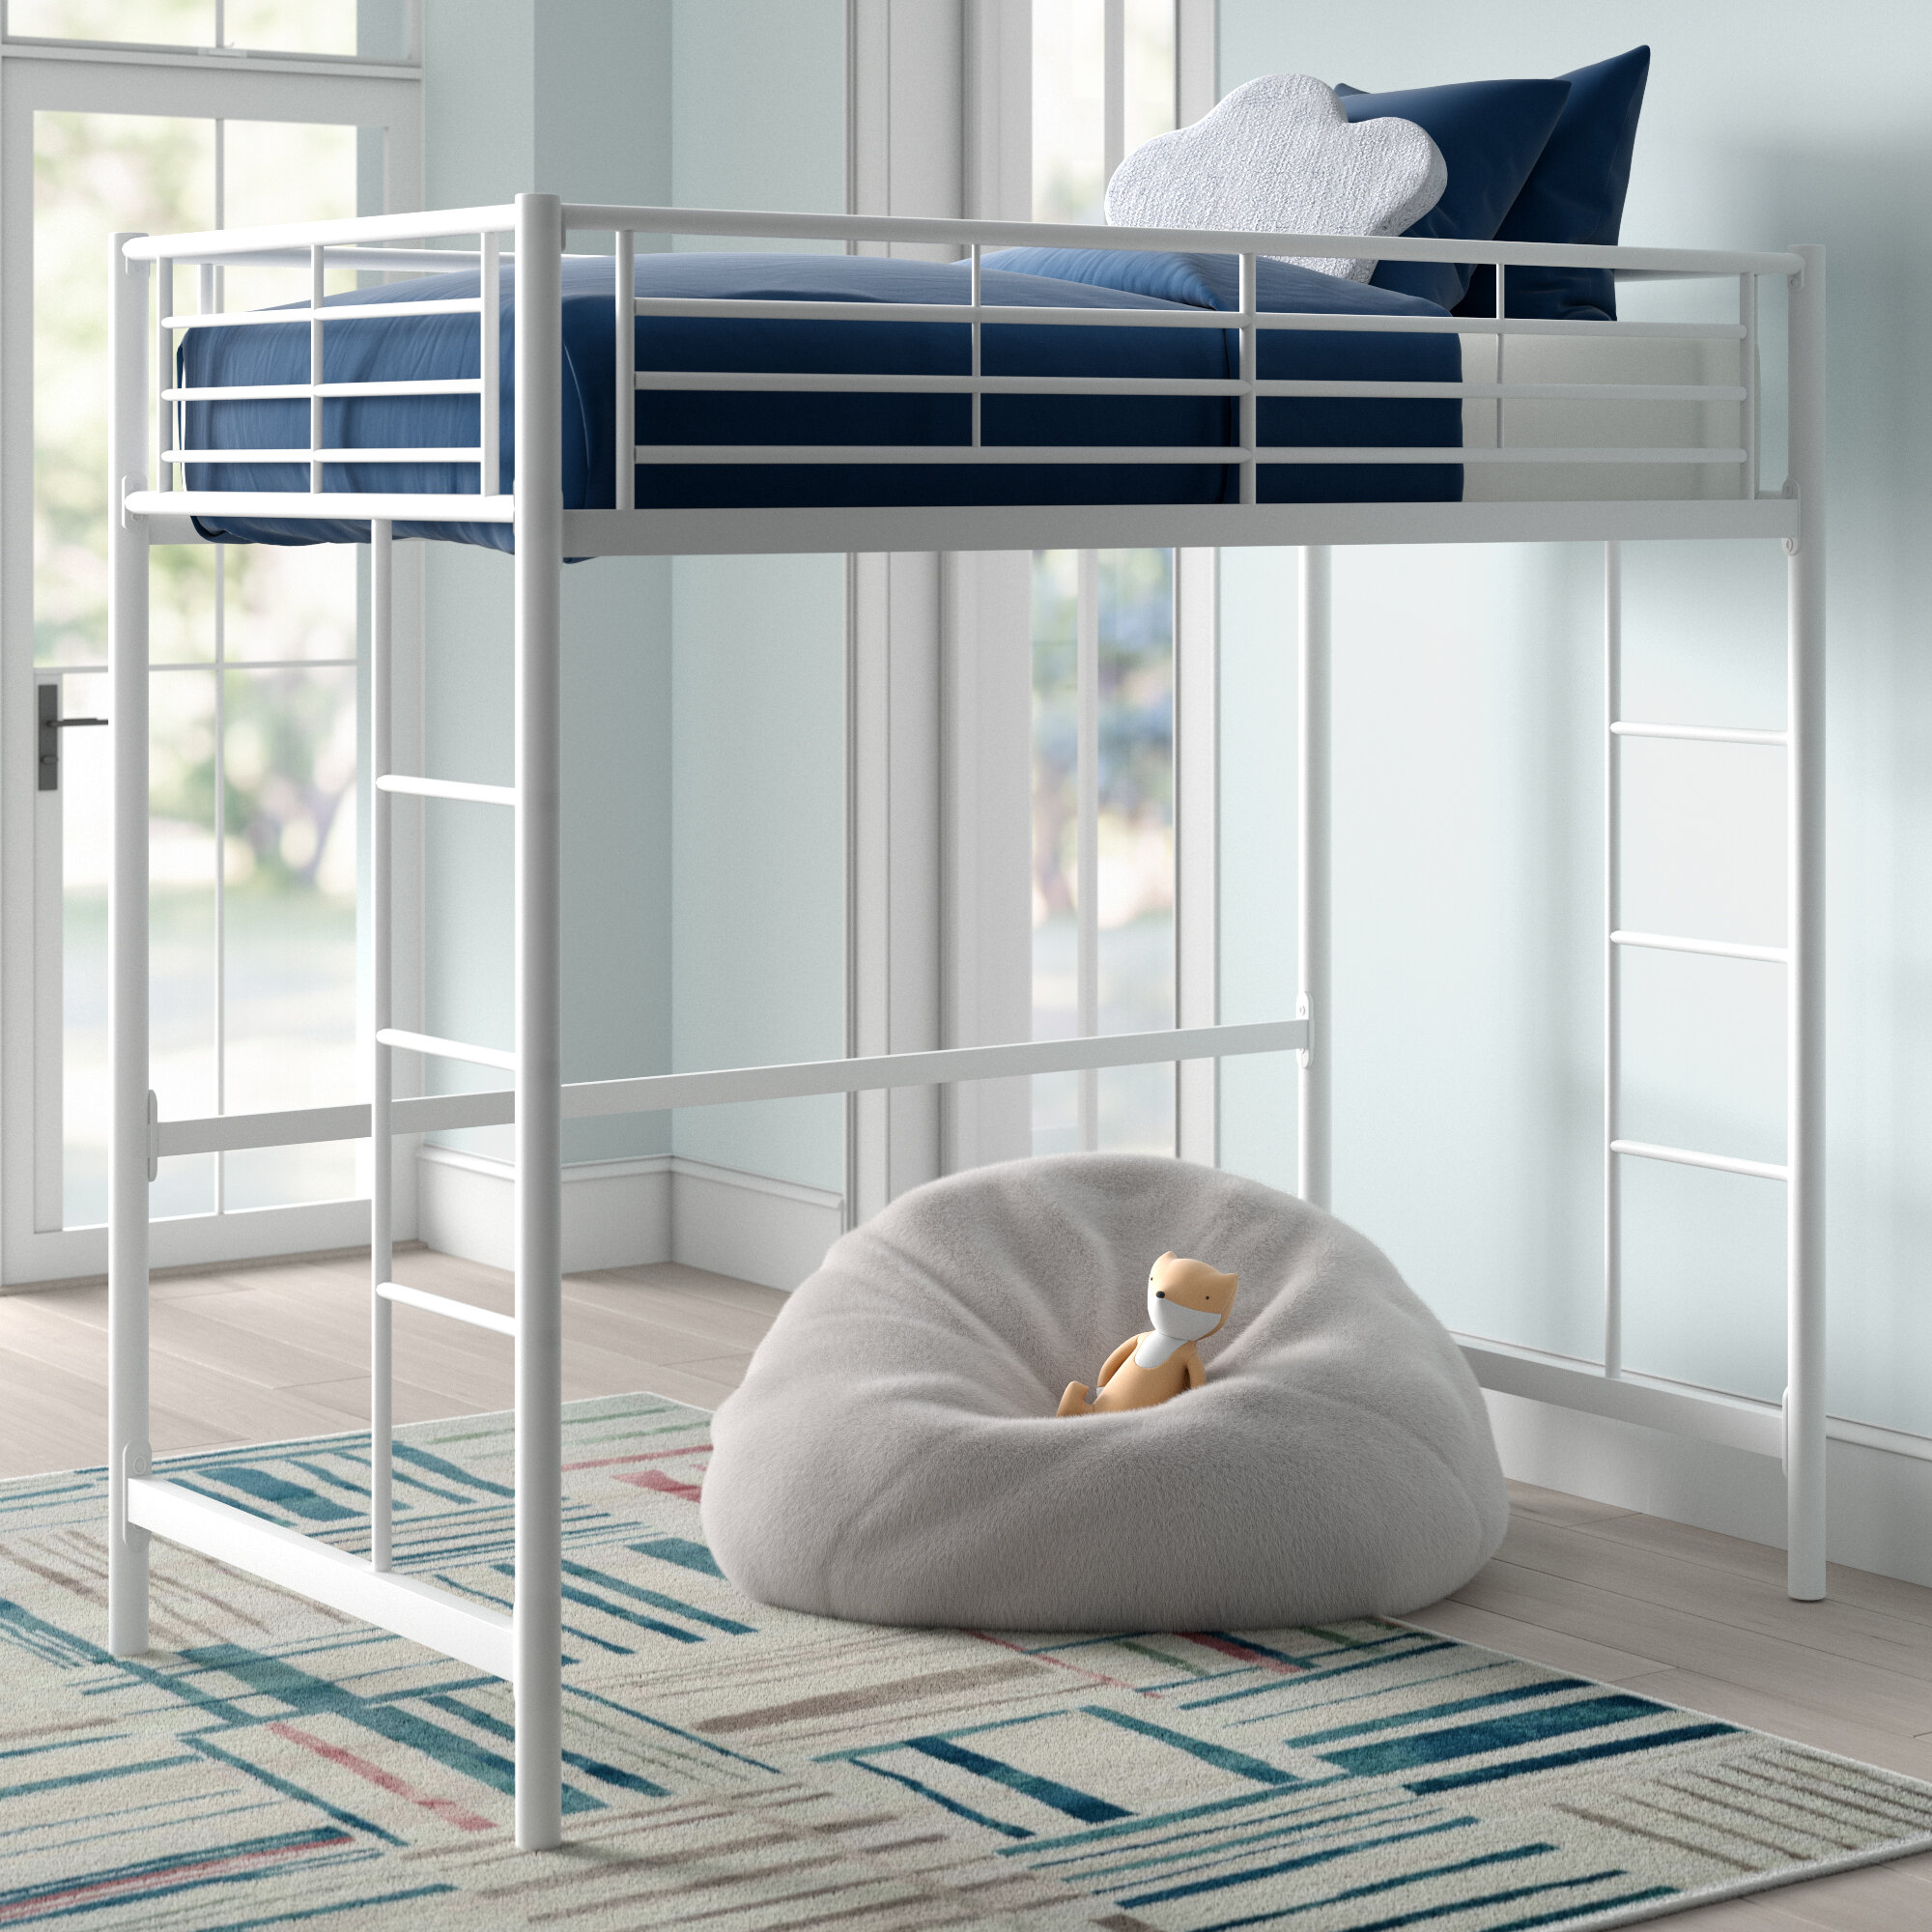 Loft White Kids Beds Free Shipping Over 35 Wayfair